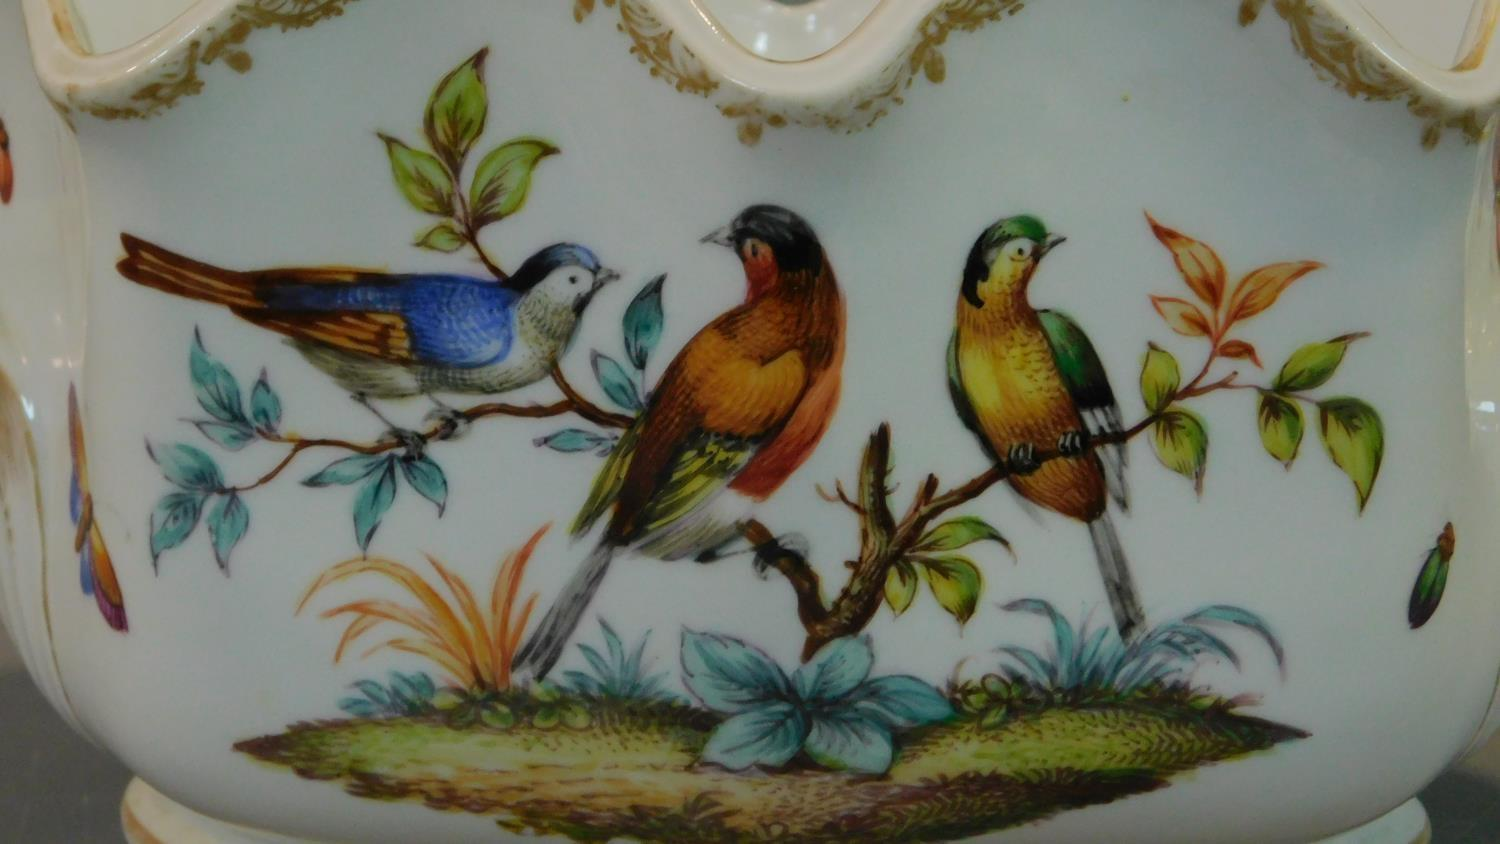 A Meissen style porcelain vase, hand painted with bird decoration. 14x18cm - Image 3 of 9